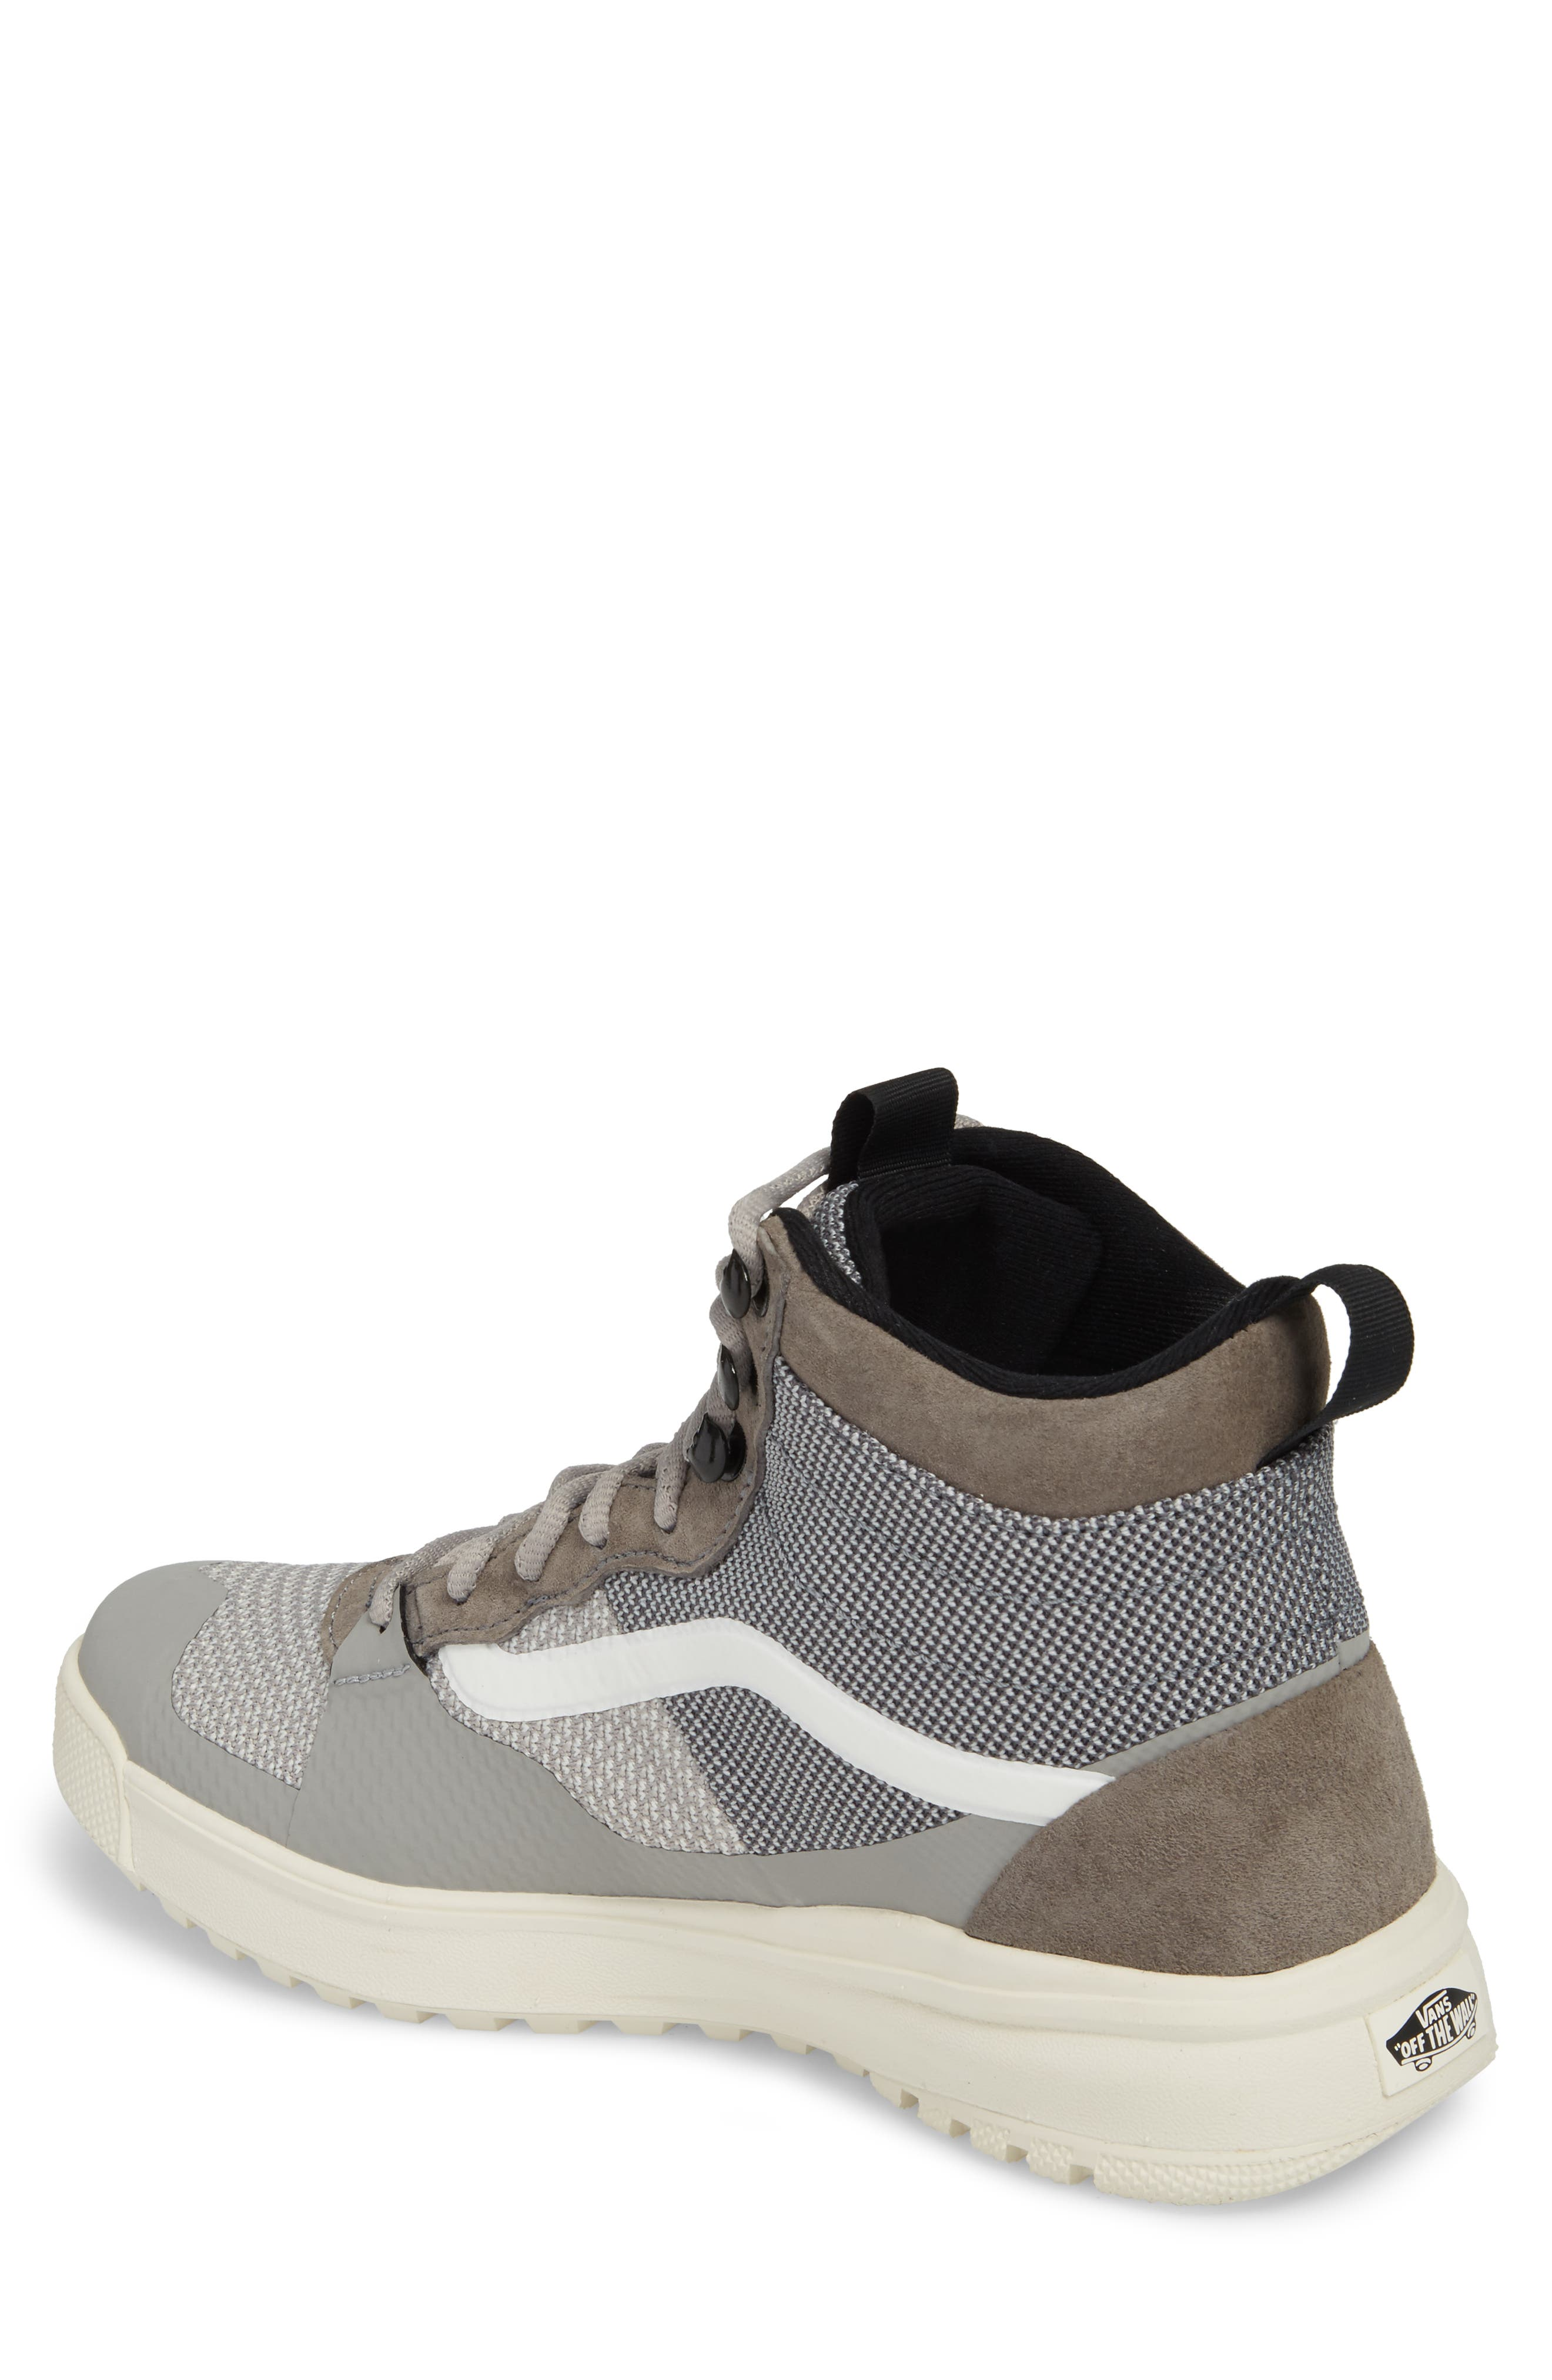 UltraRange DX High Top Sneaker,                             Alternate thumbnail 2, color,                             Pewter/ Drizzle